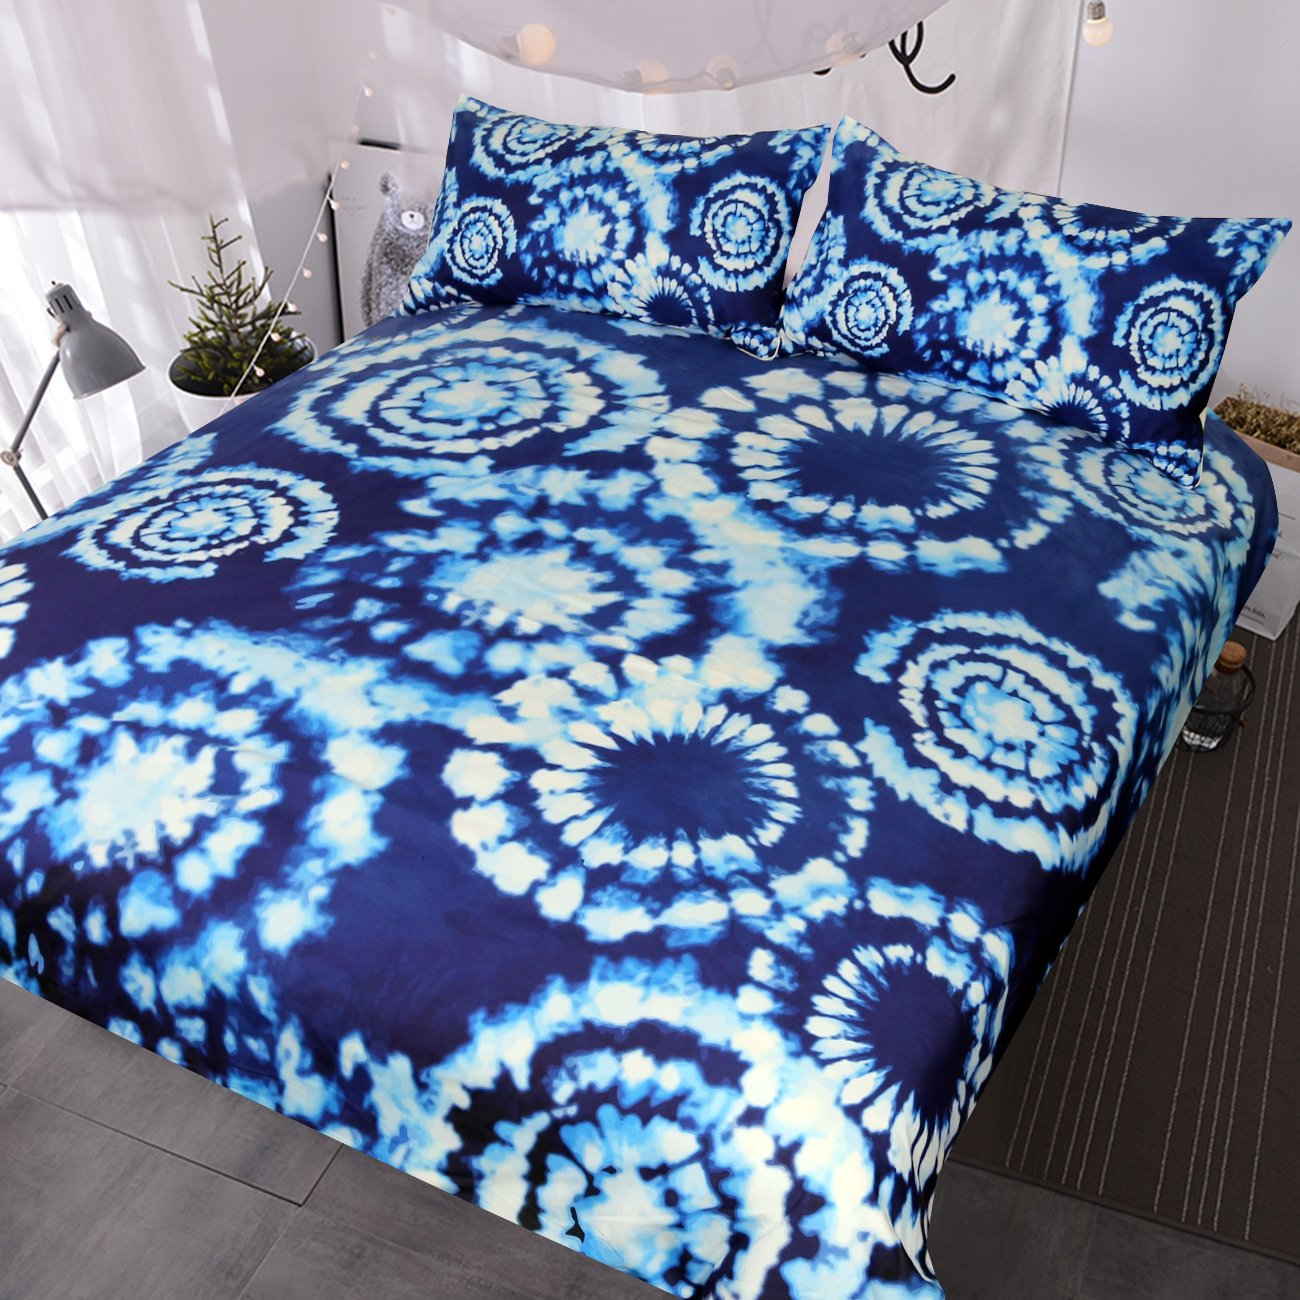 Blessliving 3 Pcs Blue Tie Dye Bedding Boho Indigo Tie Die Bedspreads Chic Blue and White Tie-Dyed Duvet Cover (Full)